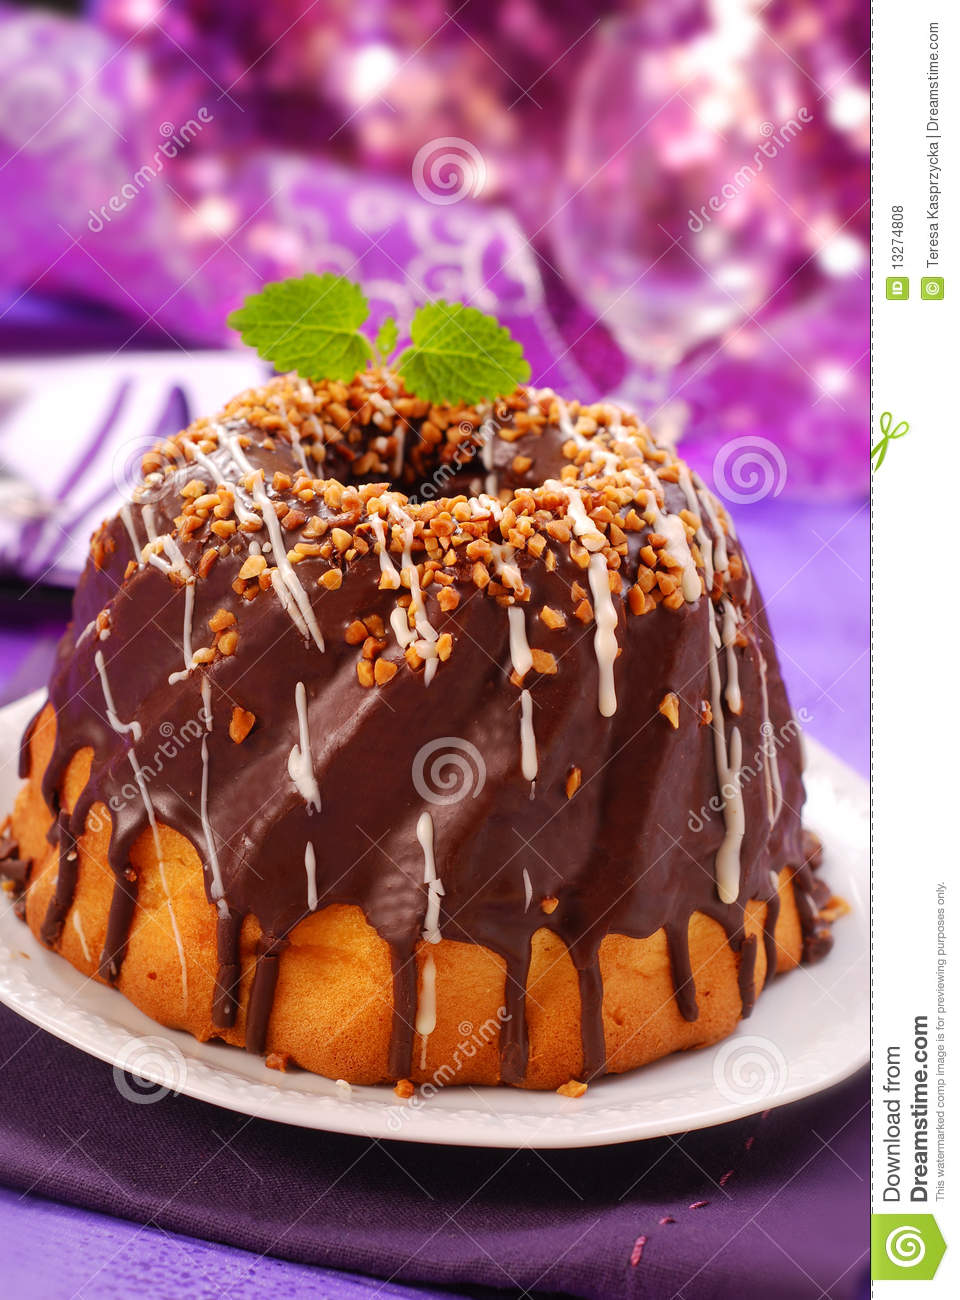 Chocolate Ring Cake Royalty Free Stock Photos - Image: 13274808